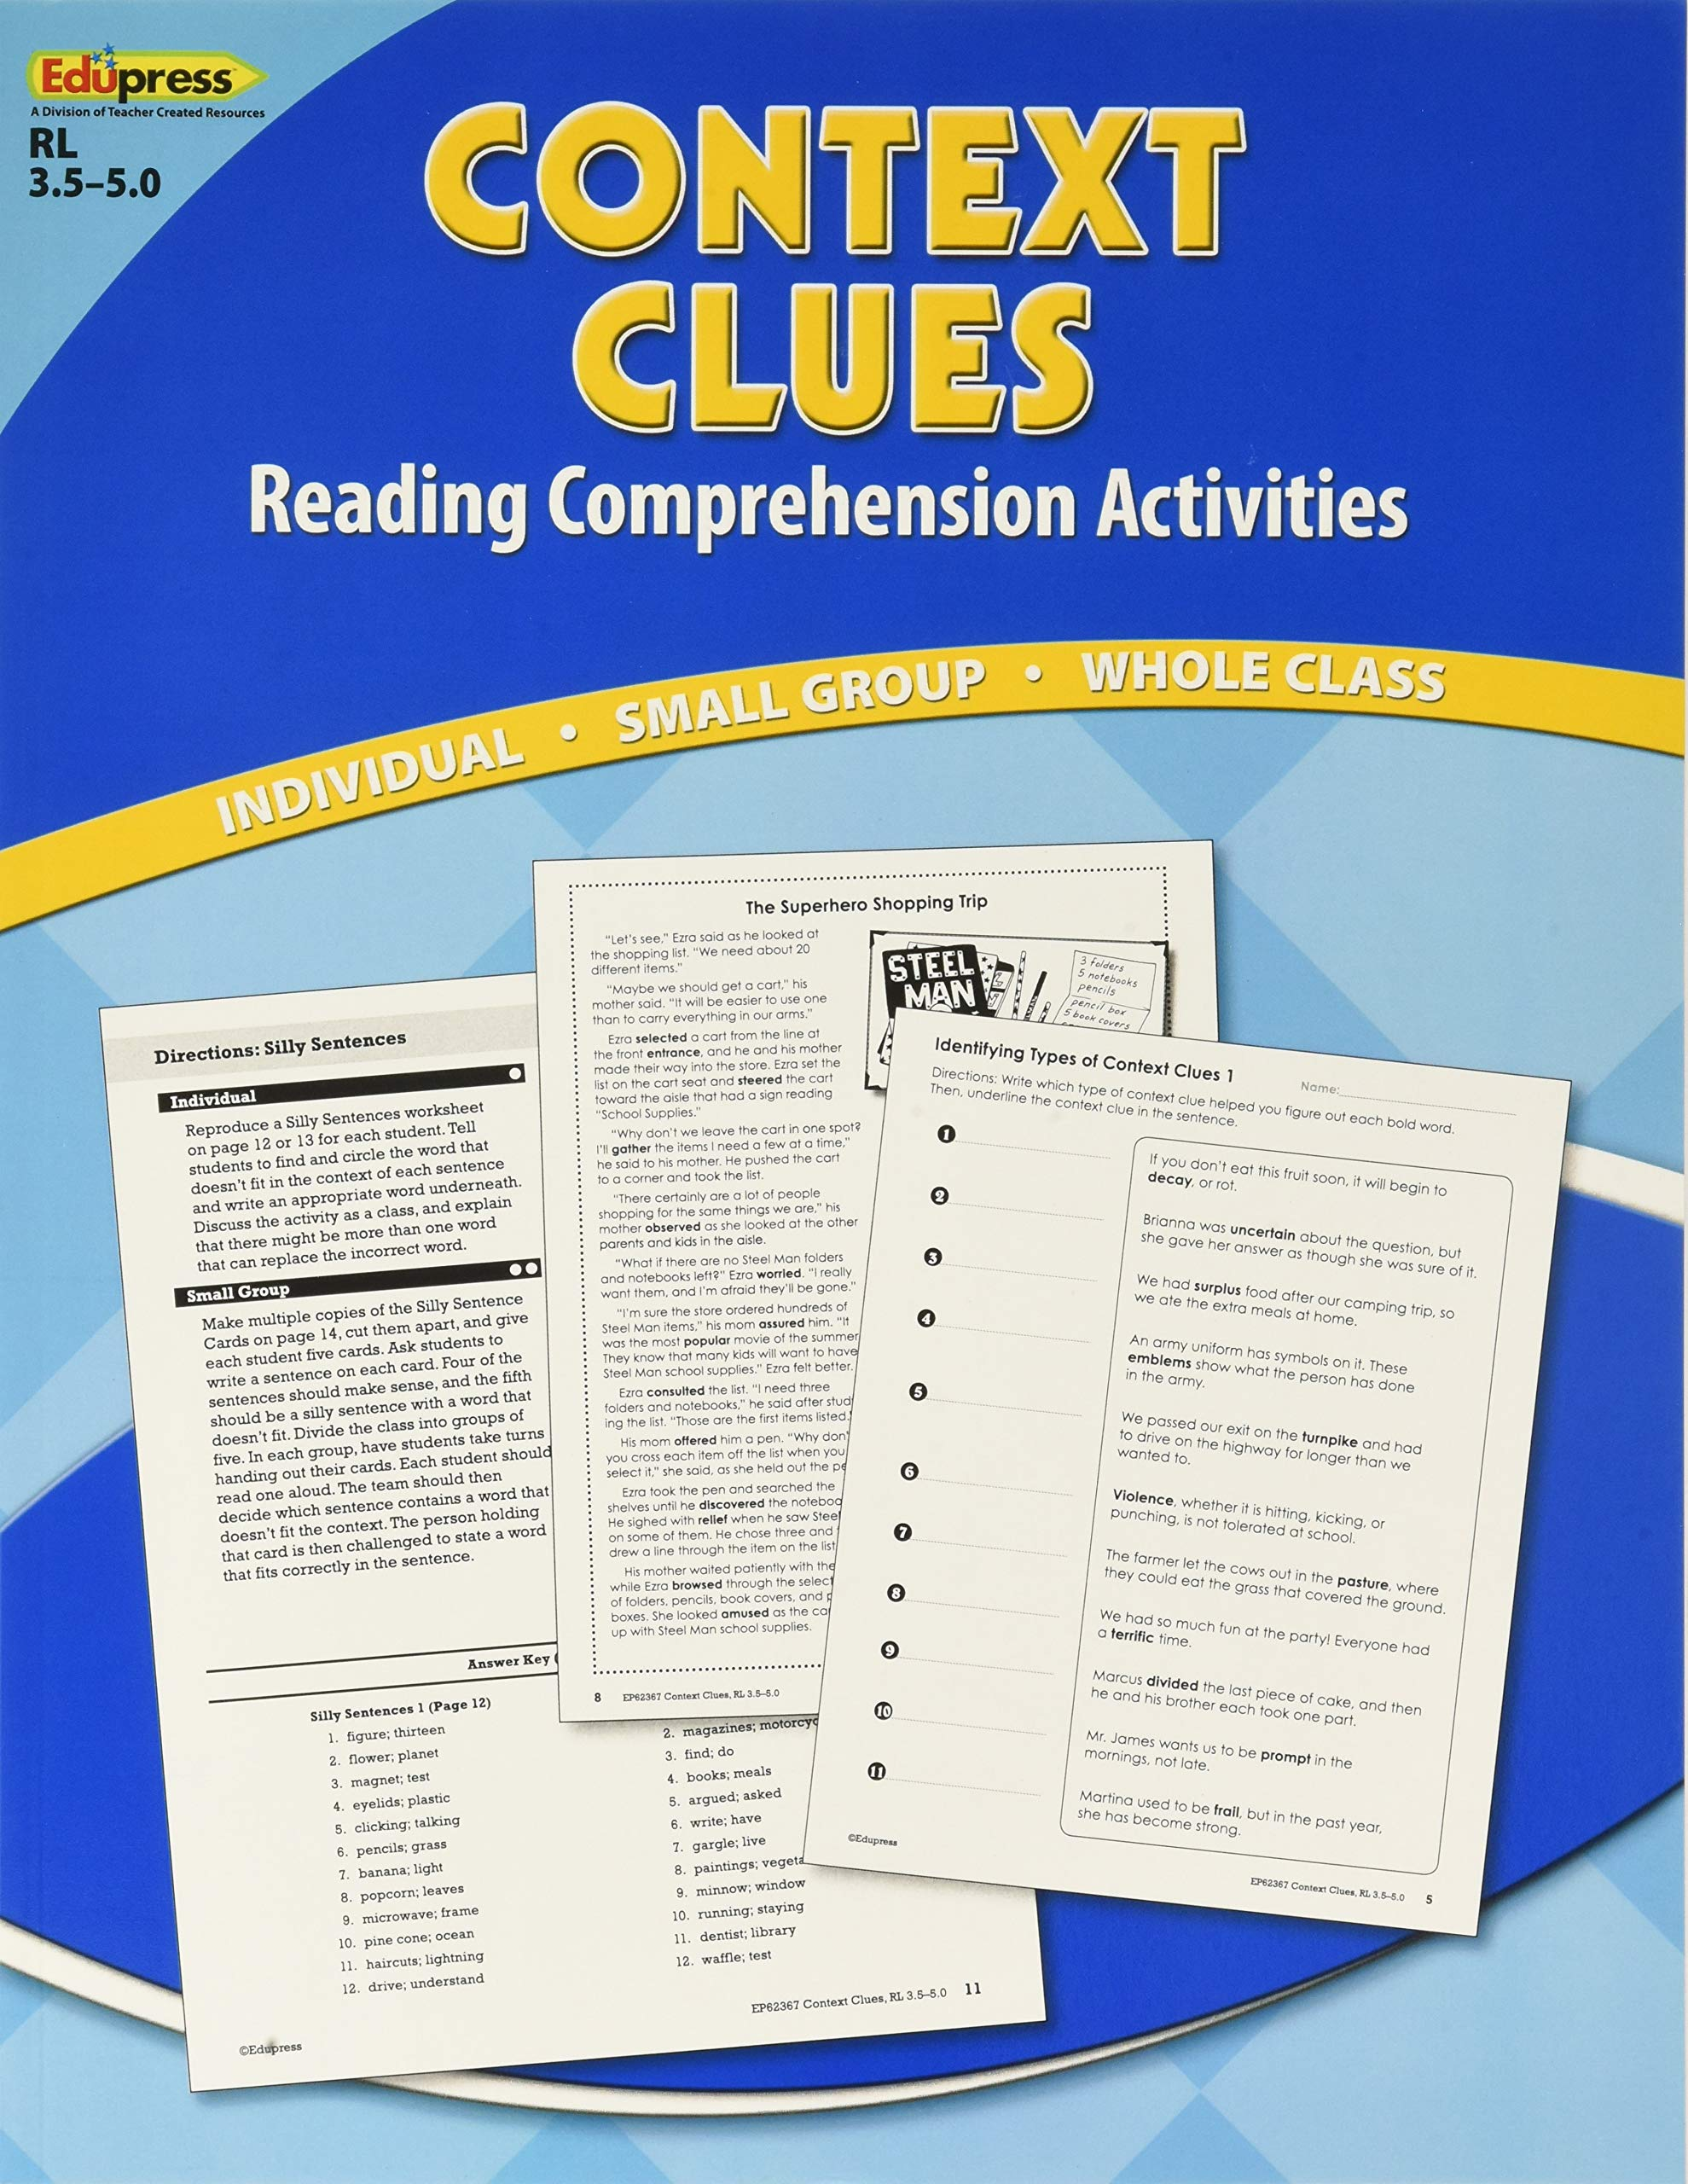 - Context Clues: Reading Comprehension Activities: TCR Staff